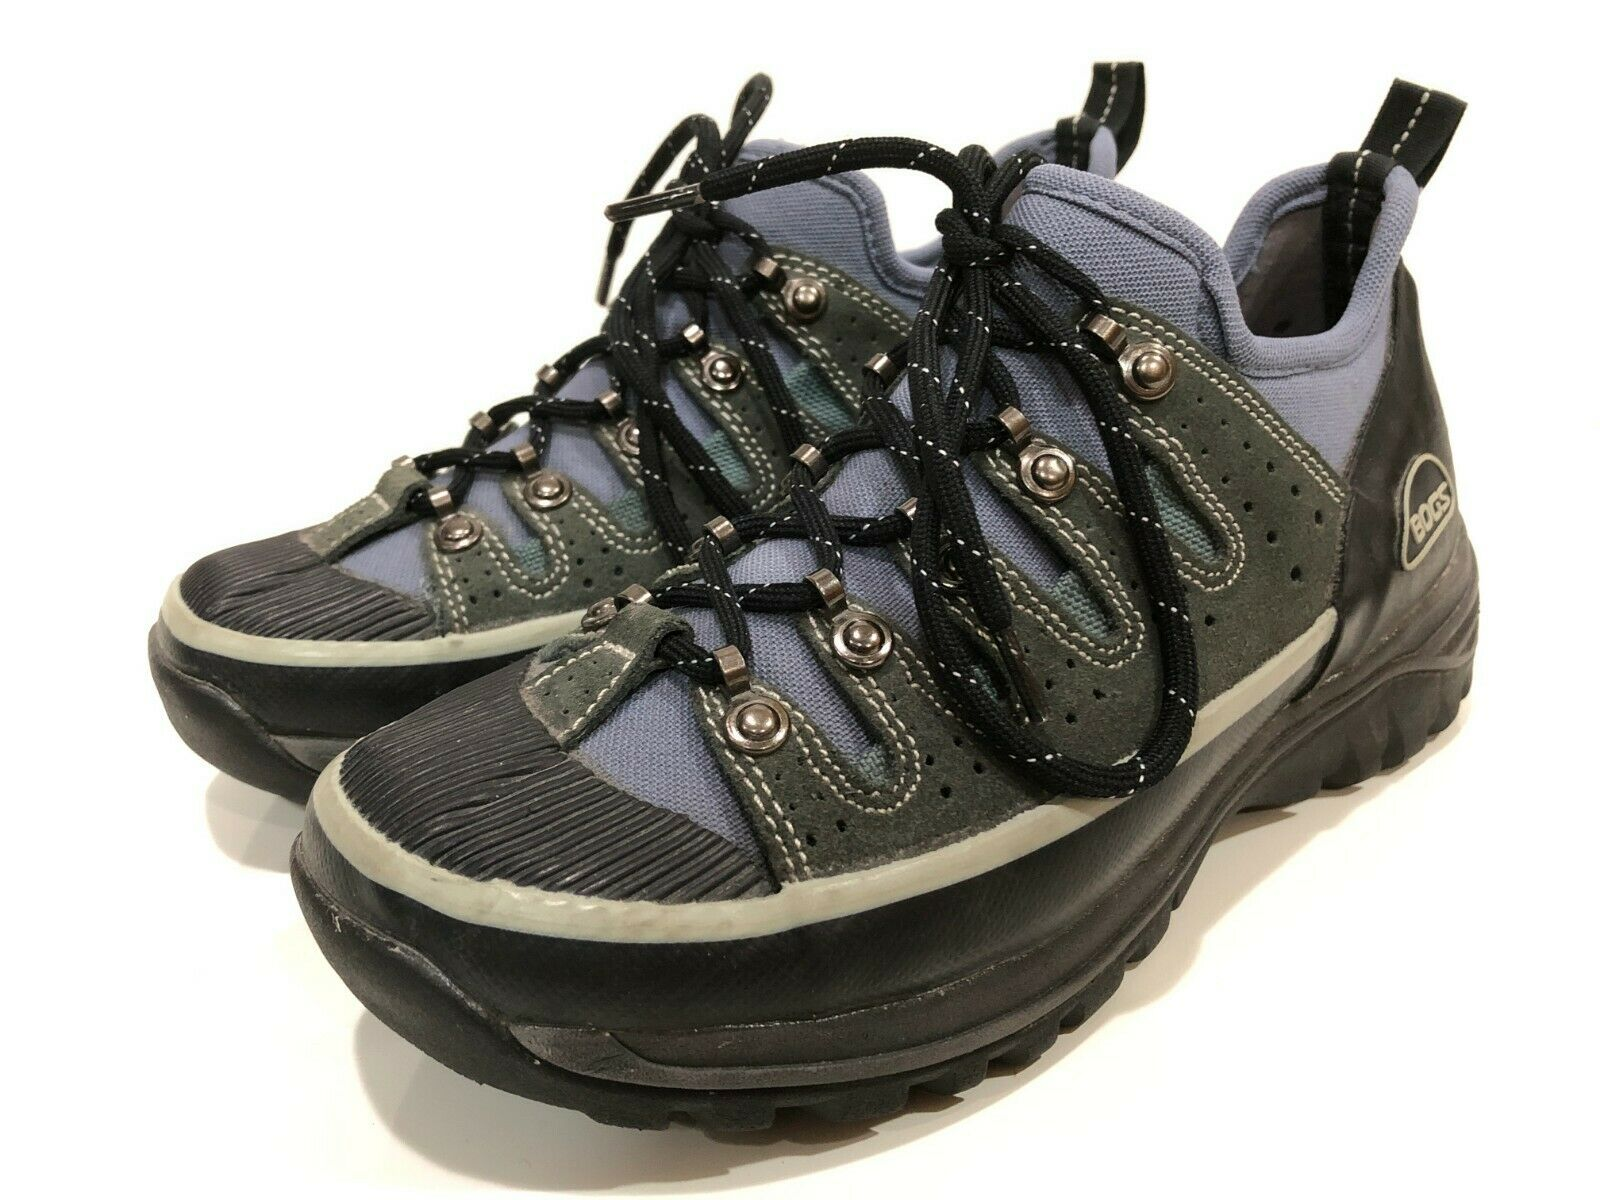 Bogs Osmosis LO MT Women's Waterproof Hiking shoes Size 6 M